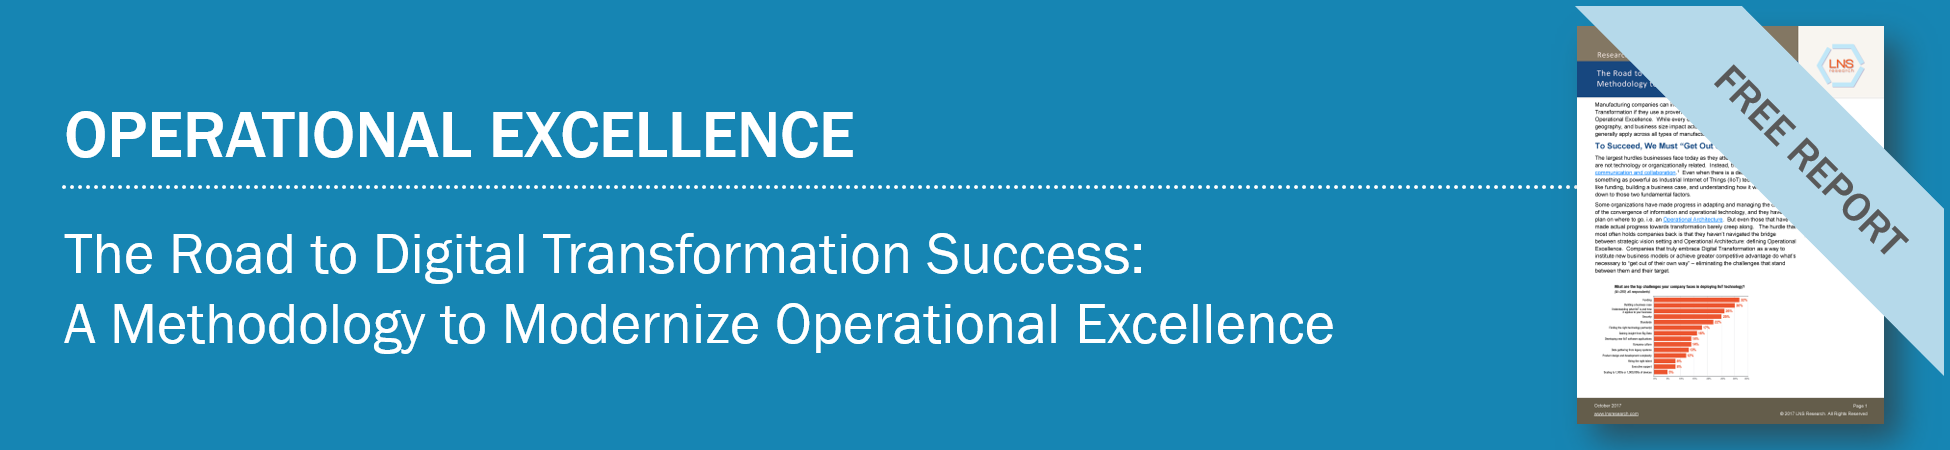 The Road to Digital Transformation Success: A Methodology to Modernize Operational Excellence